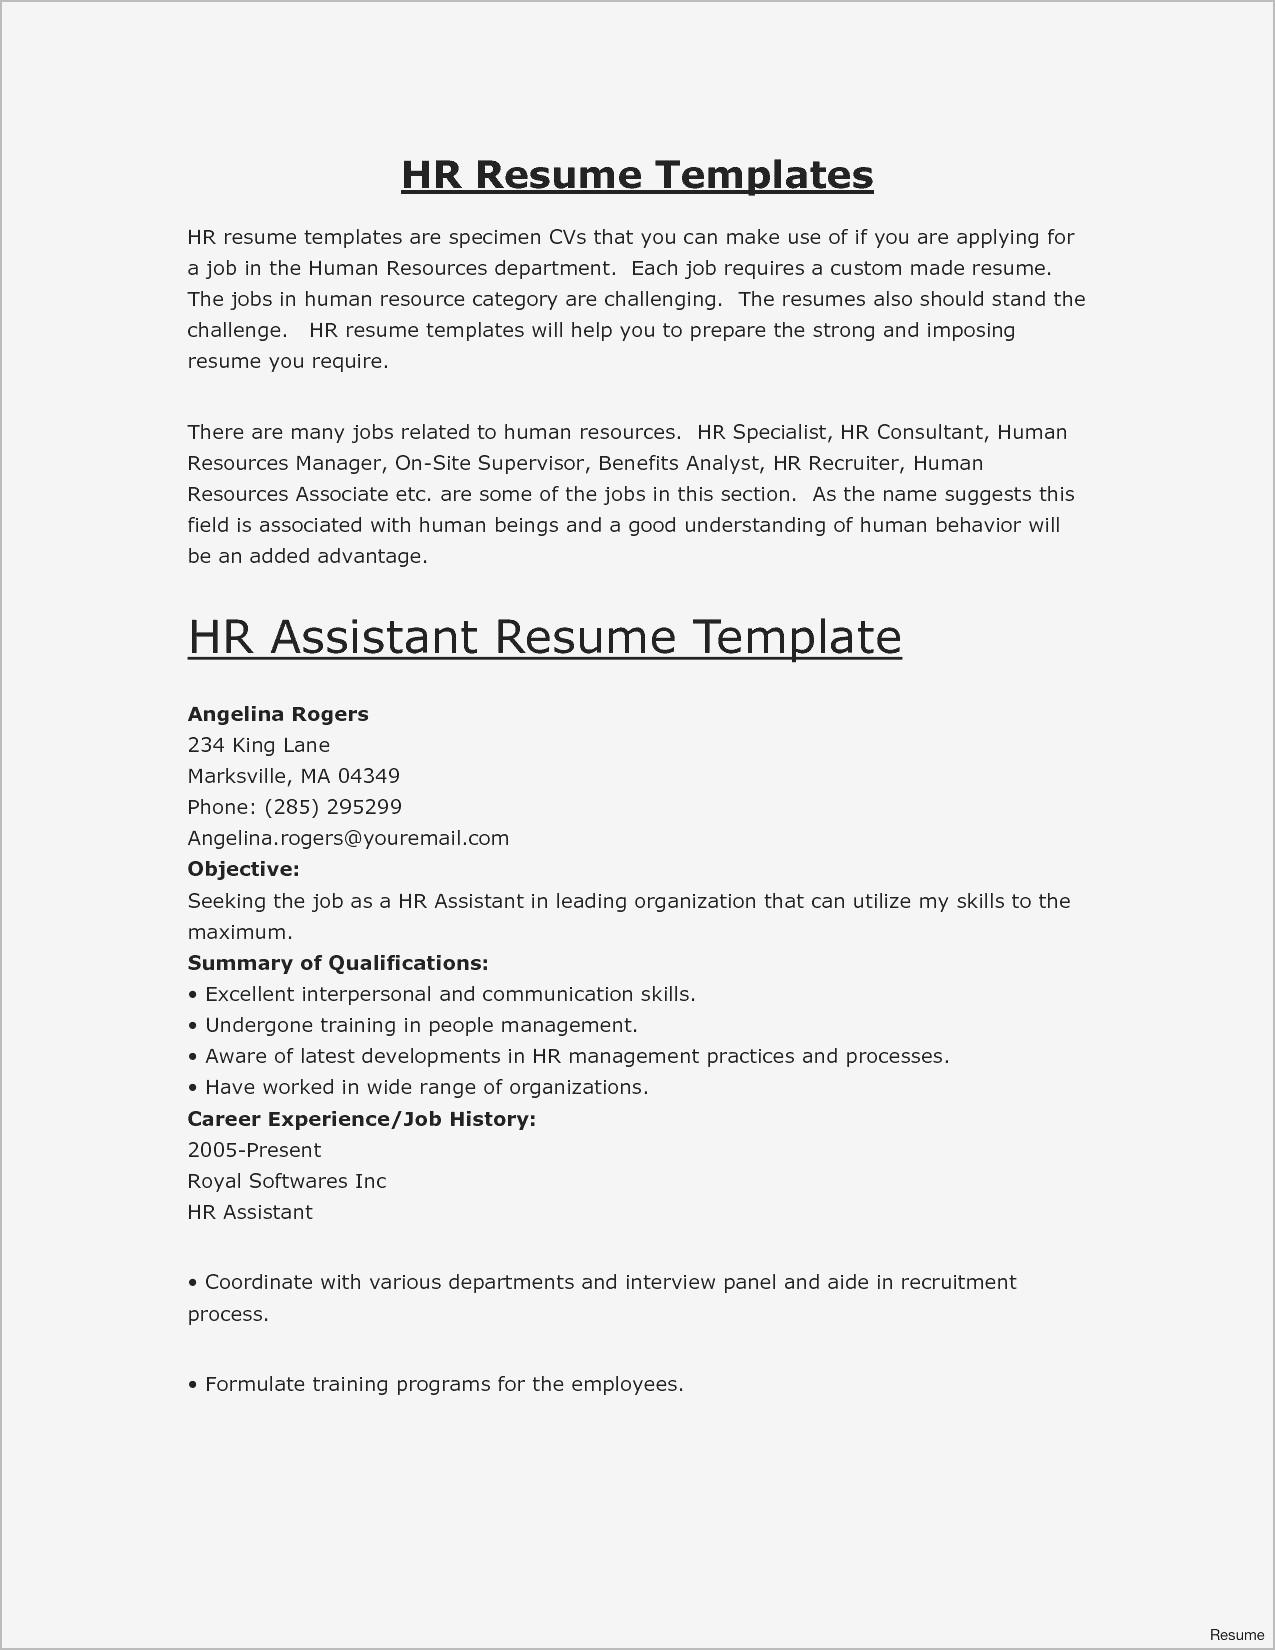 Good Words to Use On A Resume - Resume Keywords and Phrases New Resume Key Words Unique Keywords for